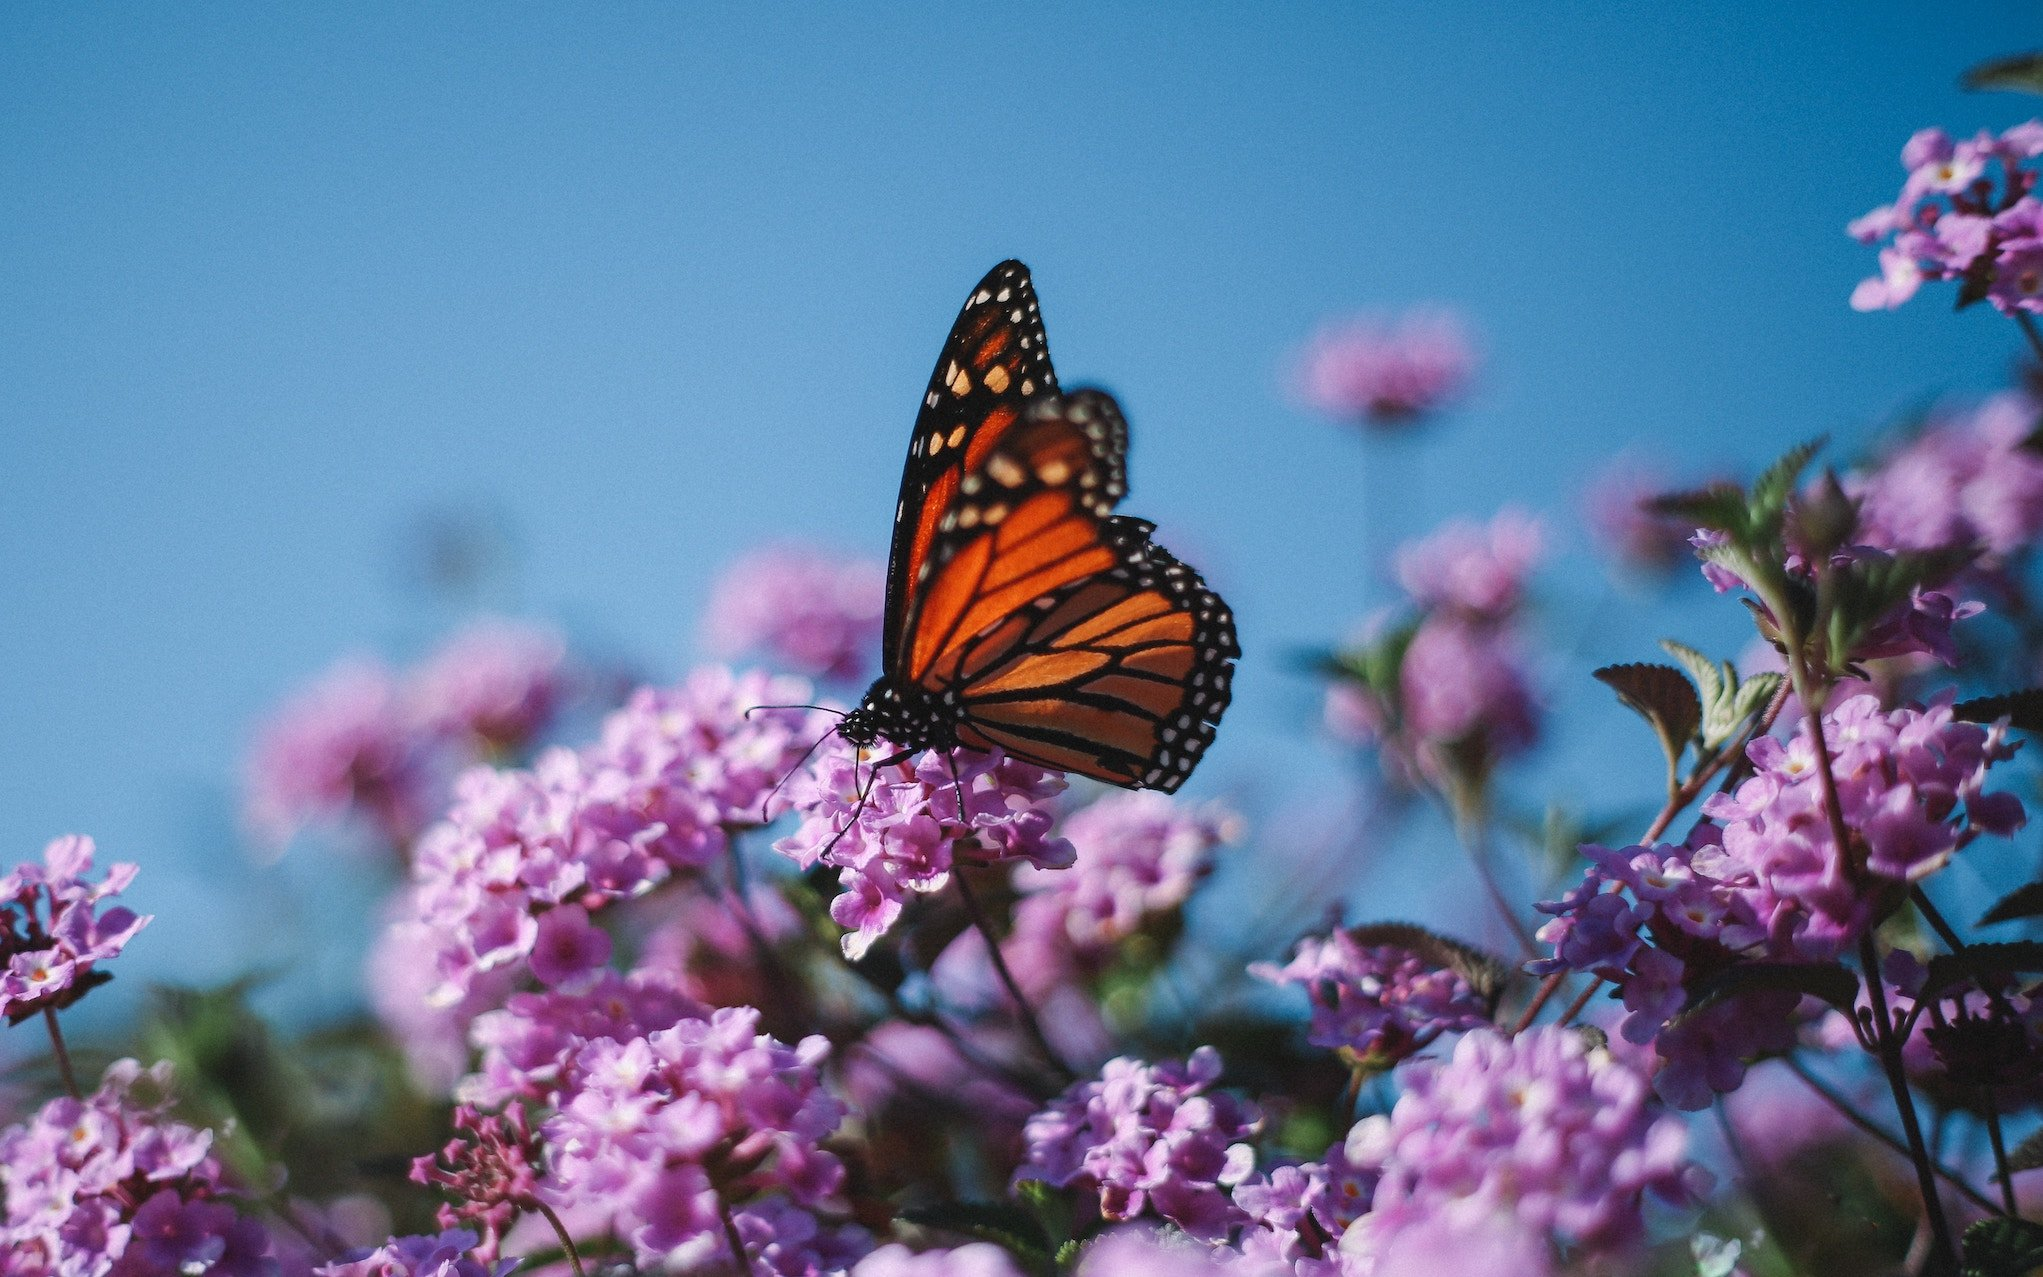 Environmentalists won a lawsuit forcing the federal government to decide by 2019 whether or not to list the once abundant Monarch butterfly as an endangered species. #endangered #wildlife #environment #species #monarch #butterfly